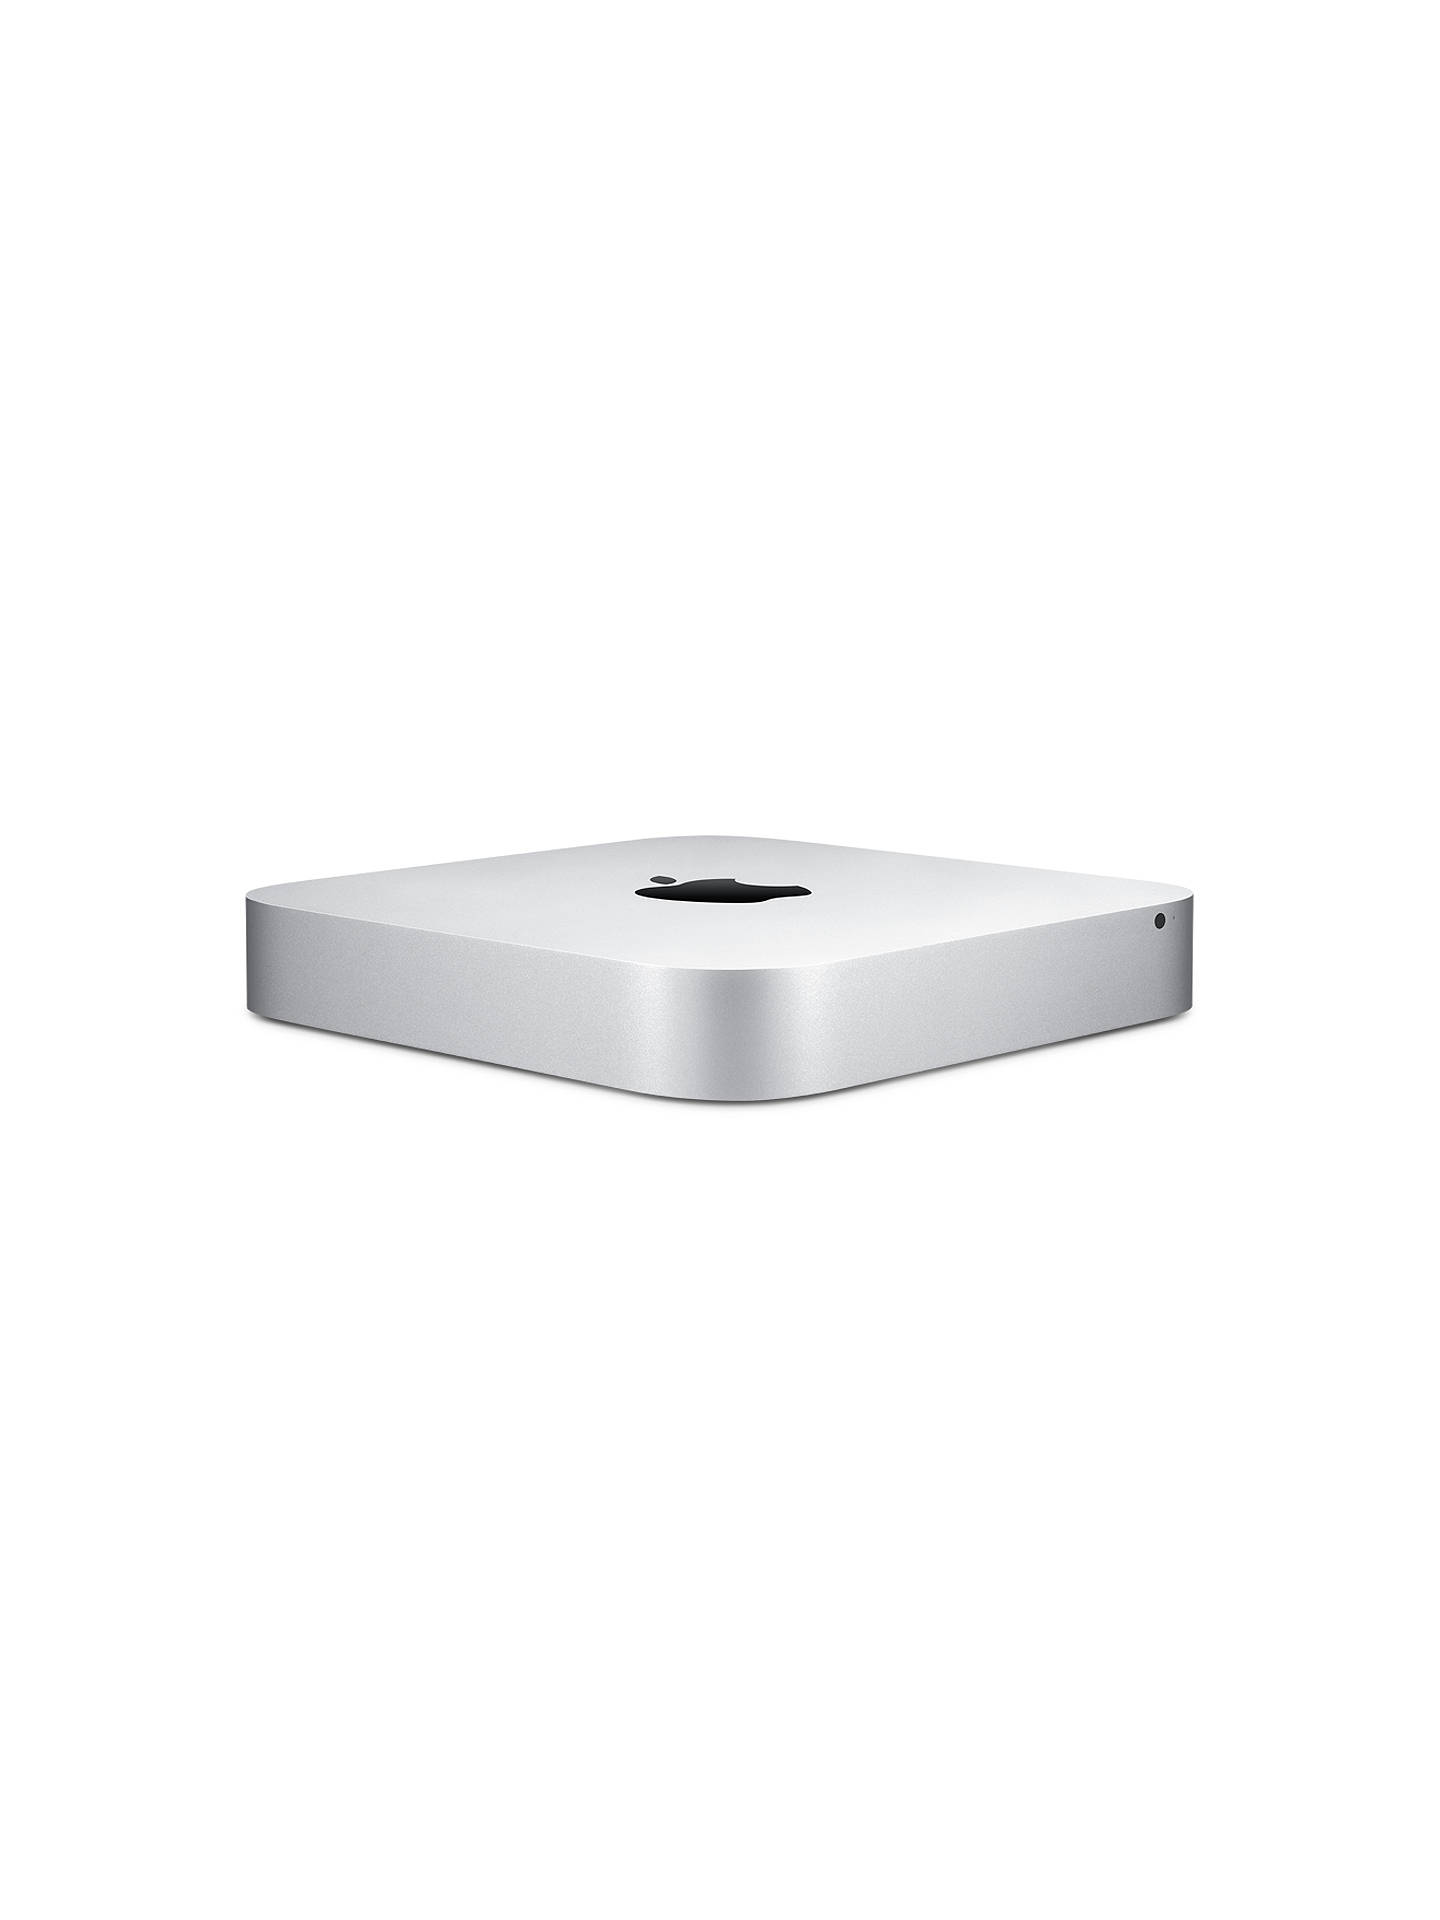 Buy Apple Mac mini MGEN2B/A Desktop Computer, Intel Core i5, 8GB RAM, 1TB Online at johnlewis.com